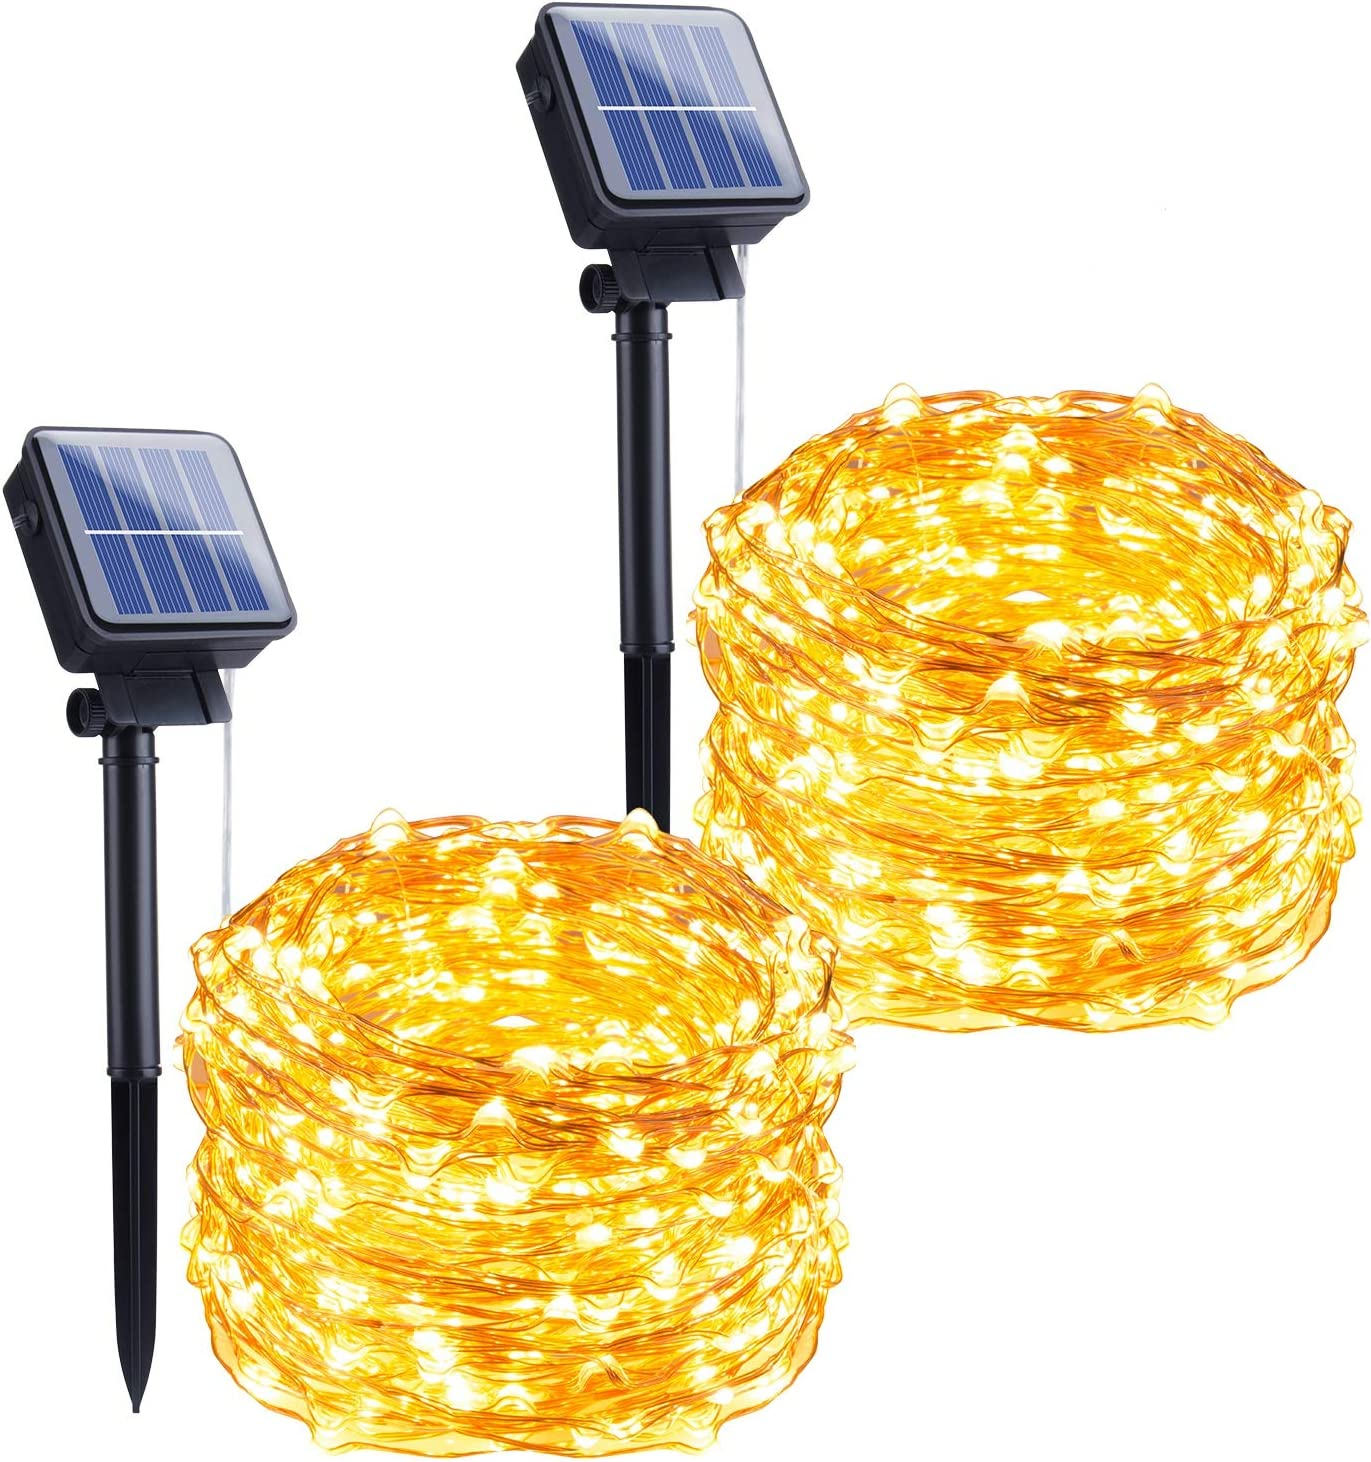 Outdoor Solar String Lights, 2 Pack 33FT 100 LED Solar Powered Fairy Lights with 8 Lighting Modes Waterproof Decoration Copper Wire Lights for Patio Yard Trees Christmas Wedding Party (Warm White) - -